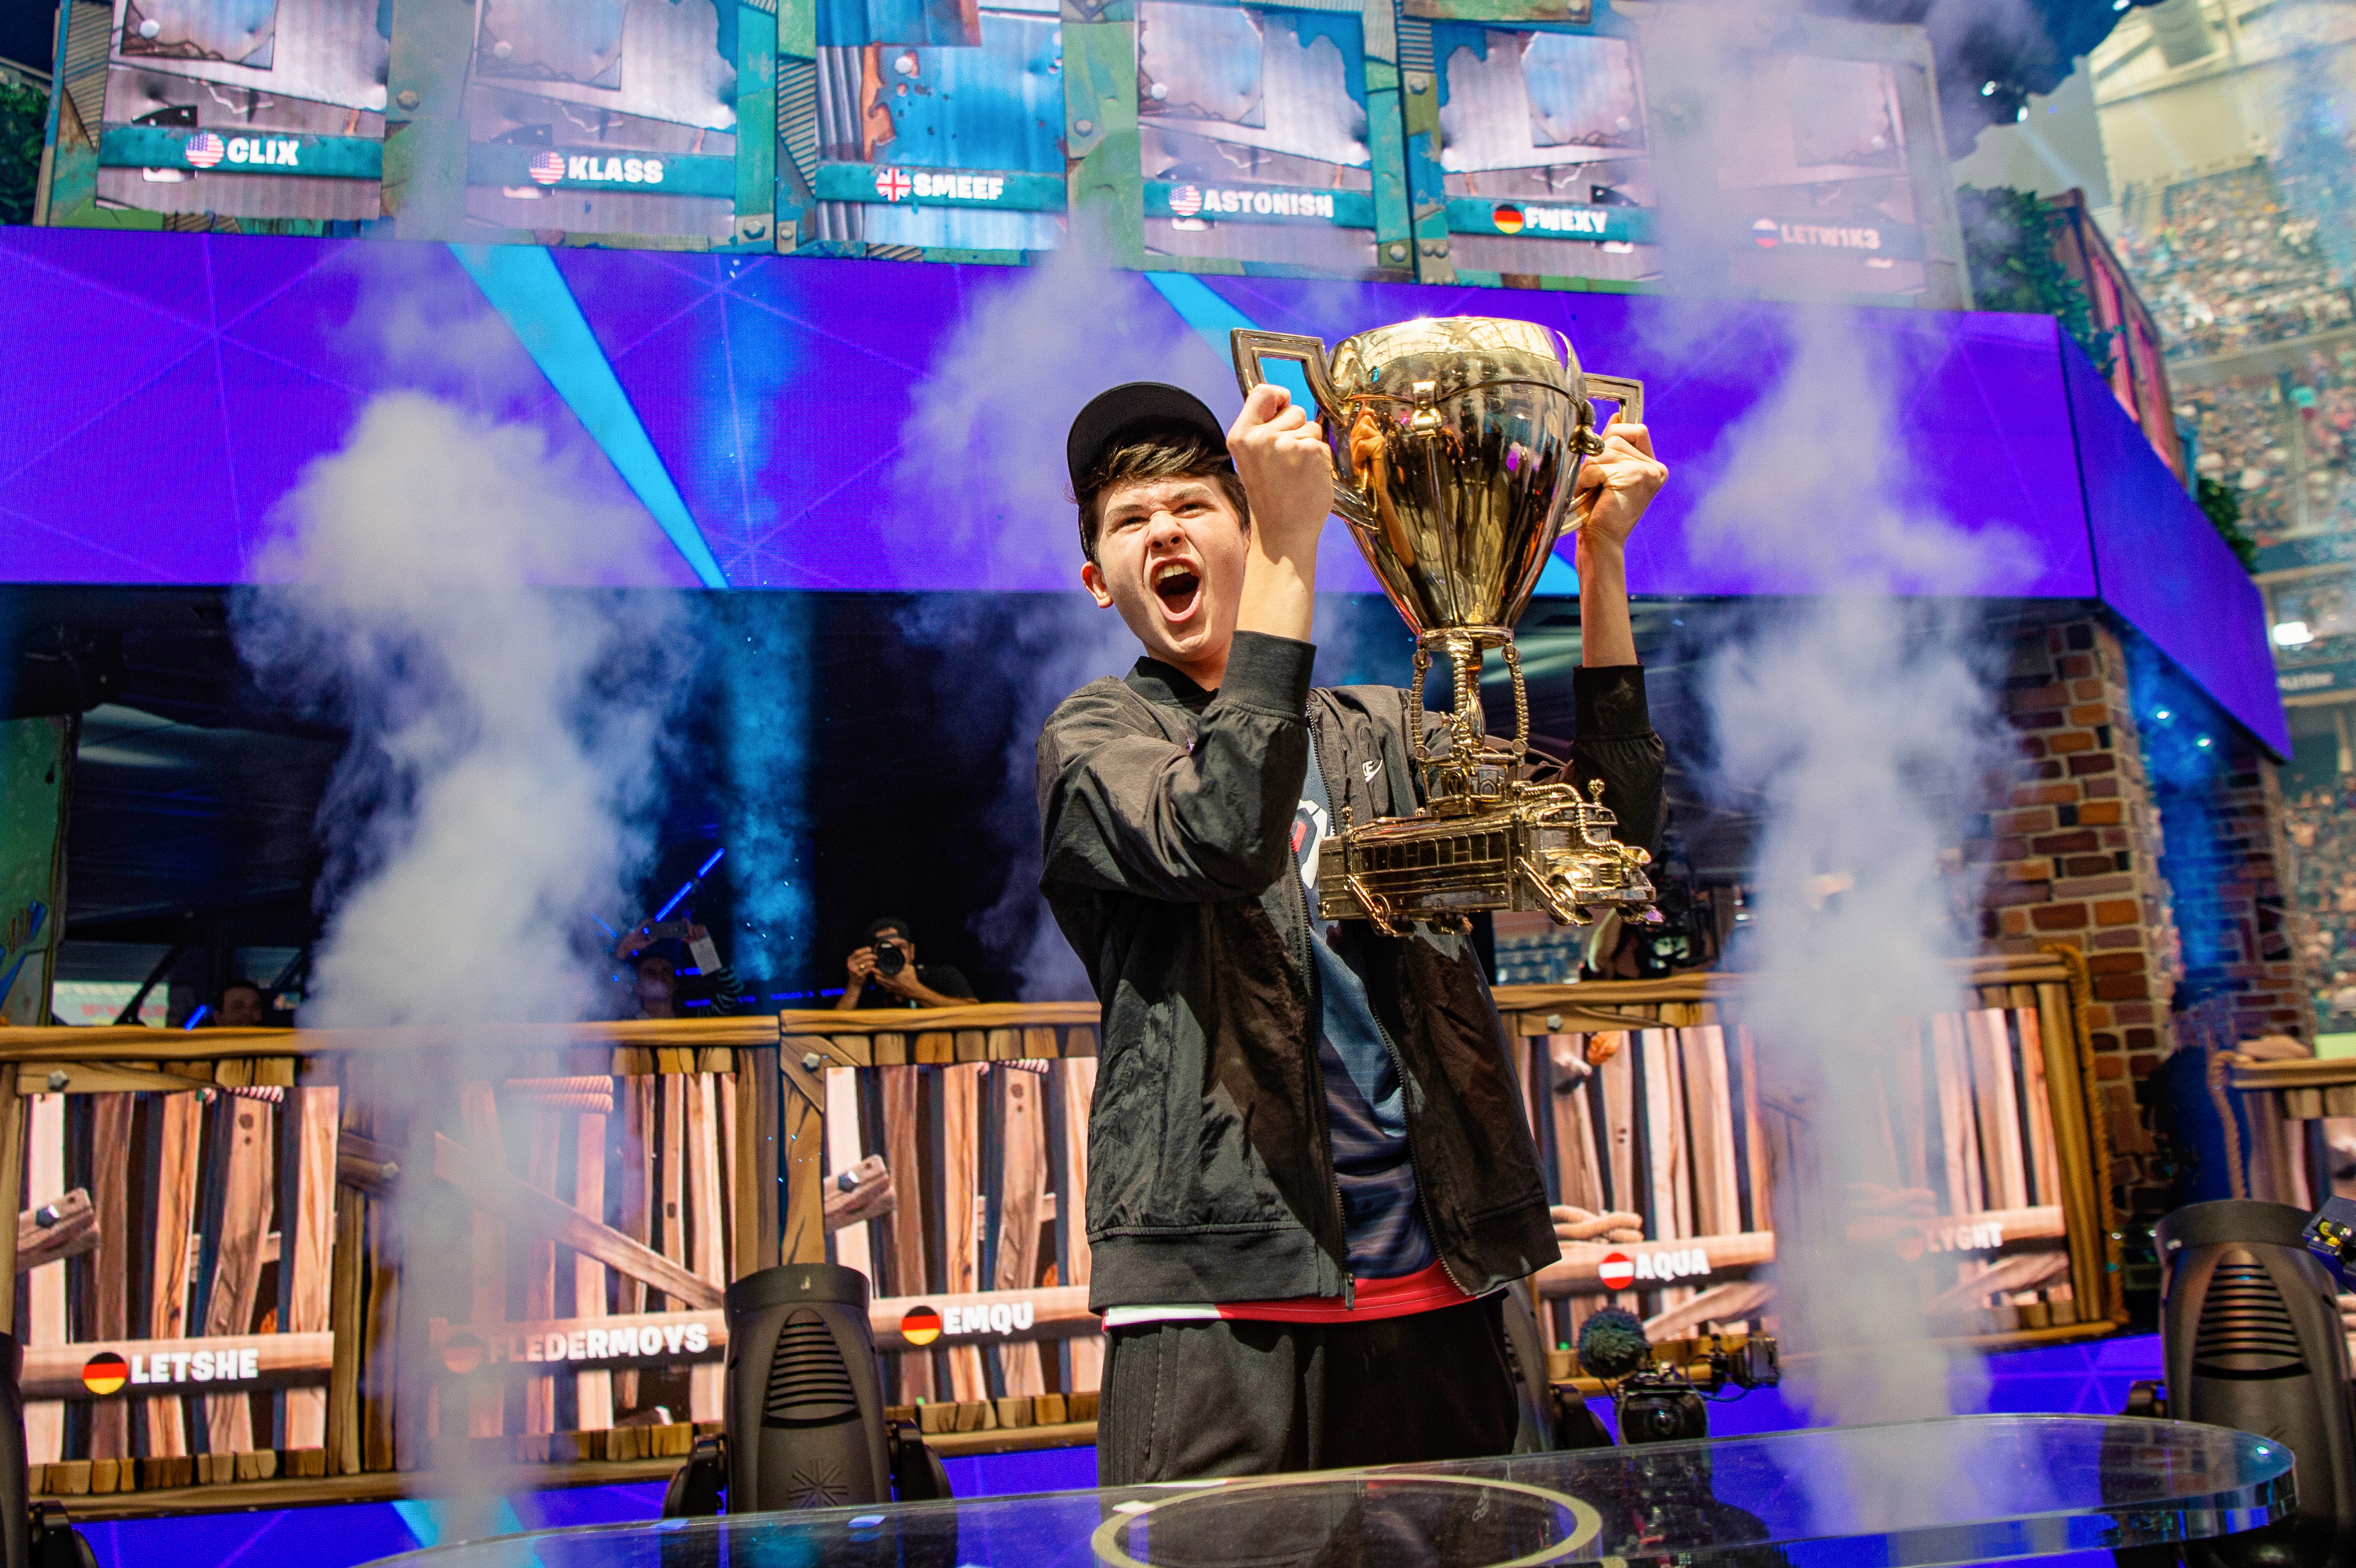 """Kyle """"Bugha"""" Giersdorf lifts the trophy at the 2019 Fortnite World Cup after winning in solos"""